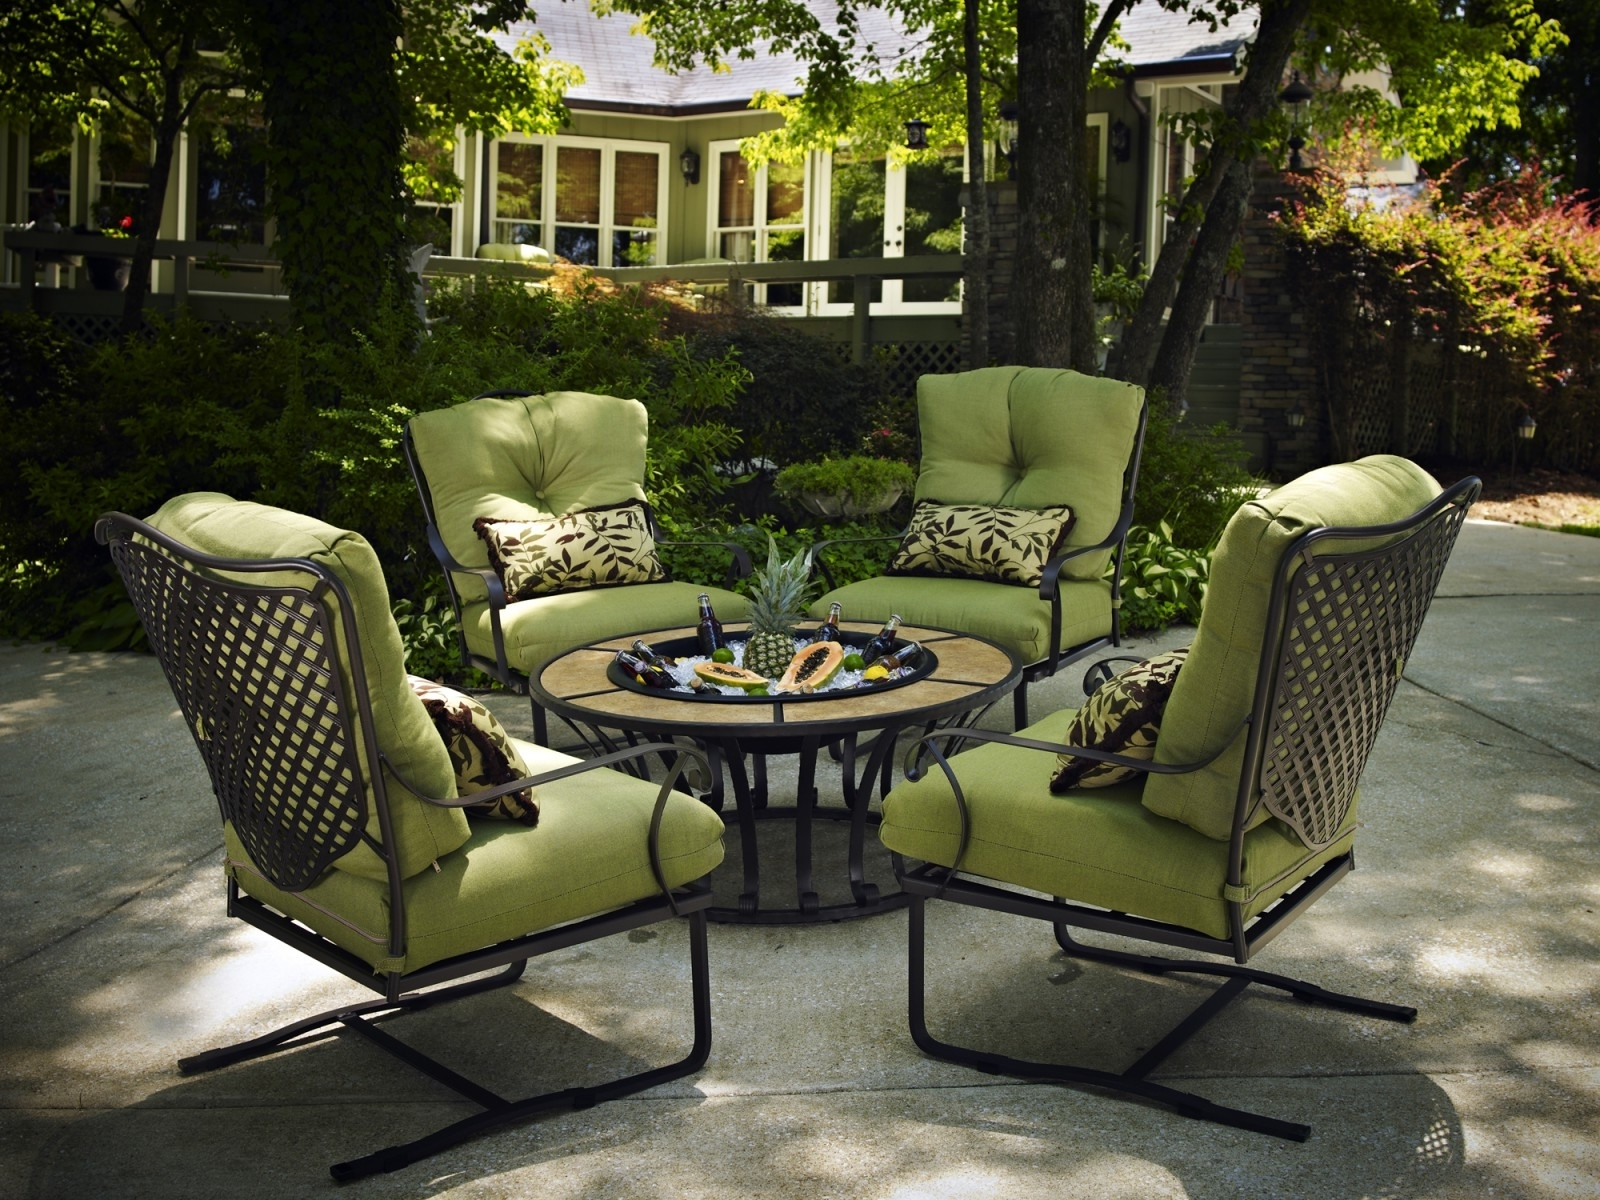 Patio : Wrought Iron Patio Furnitureca Furniture Value Plantation Regarding Most Recent Iron Patio Conversation Sets (View 12 of 20)